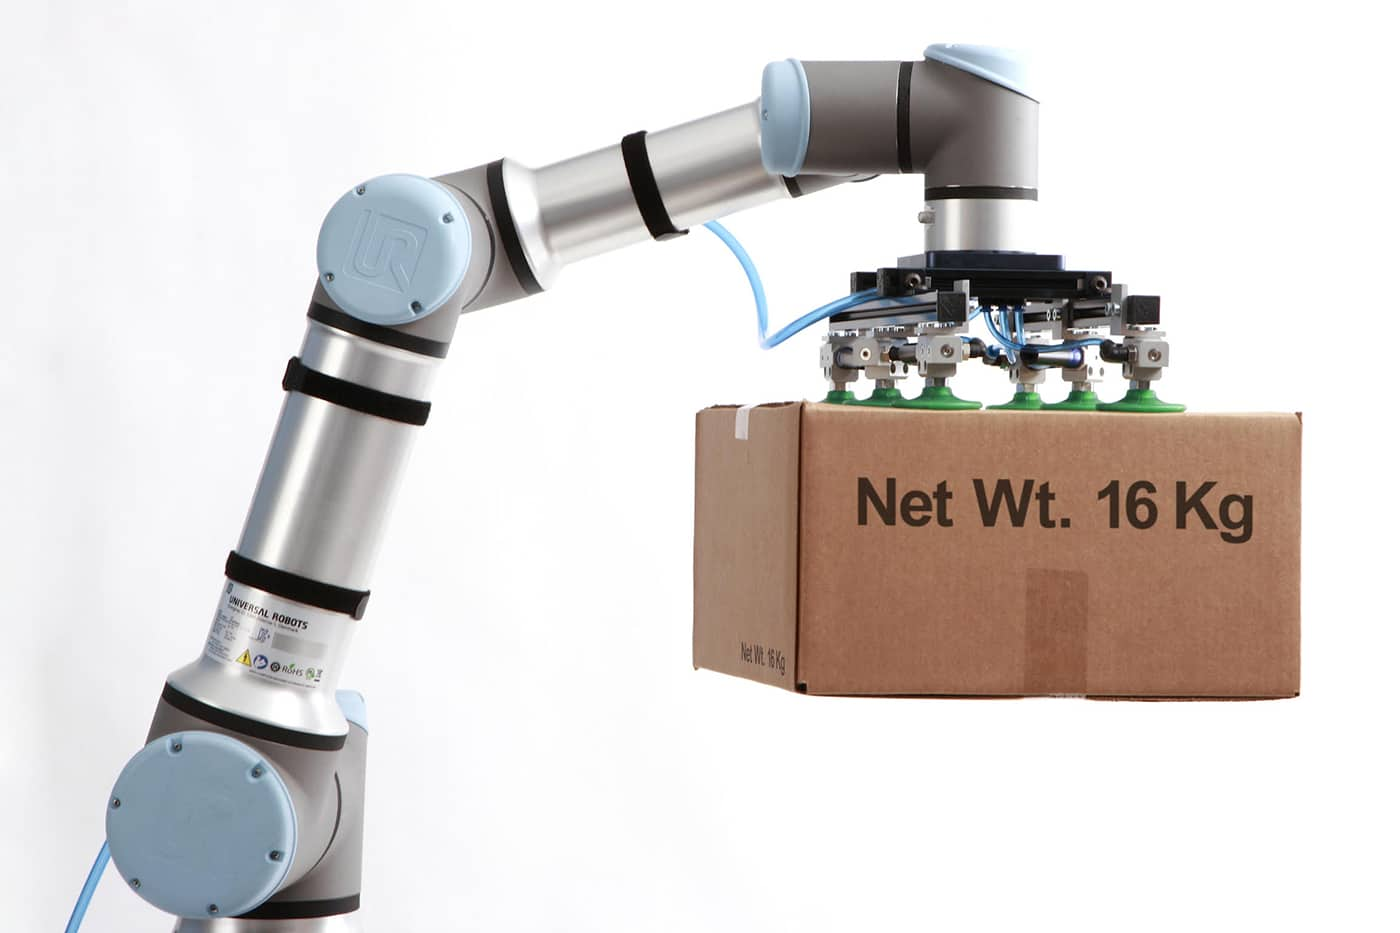 Universal Robots' new heavy-duty cobot speeds up automation